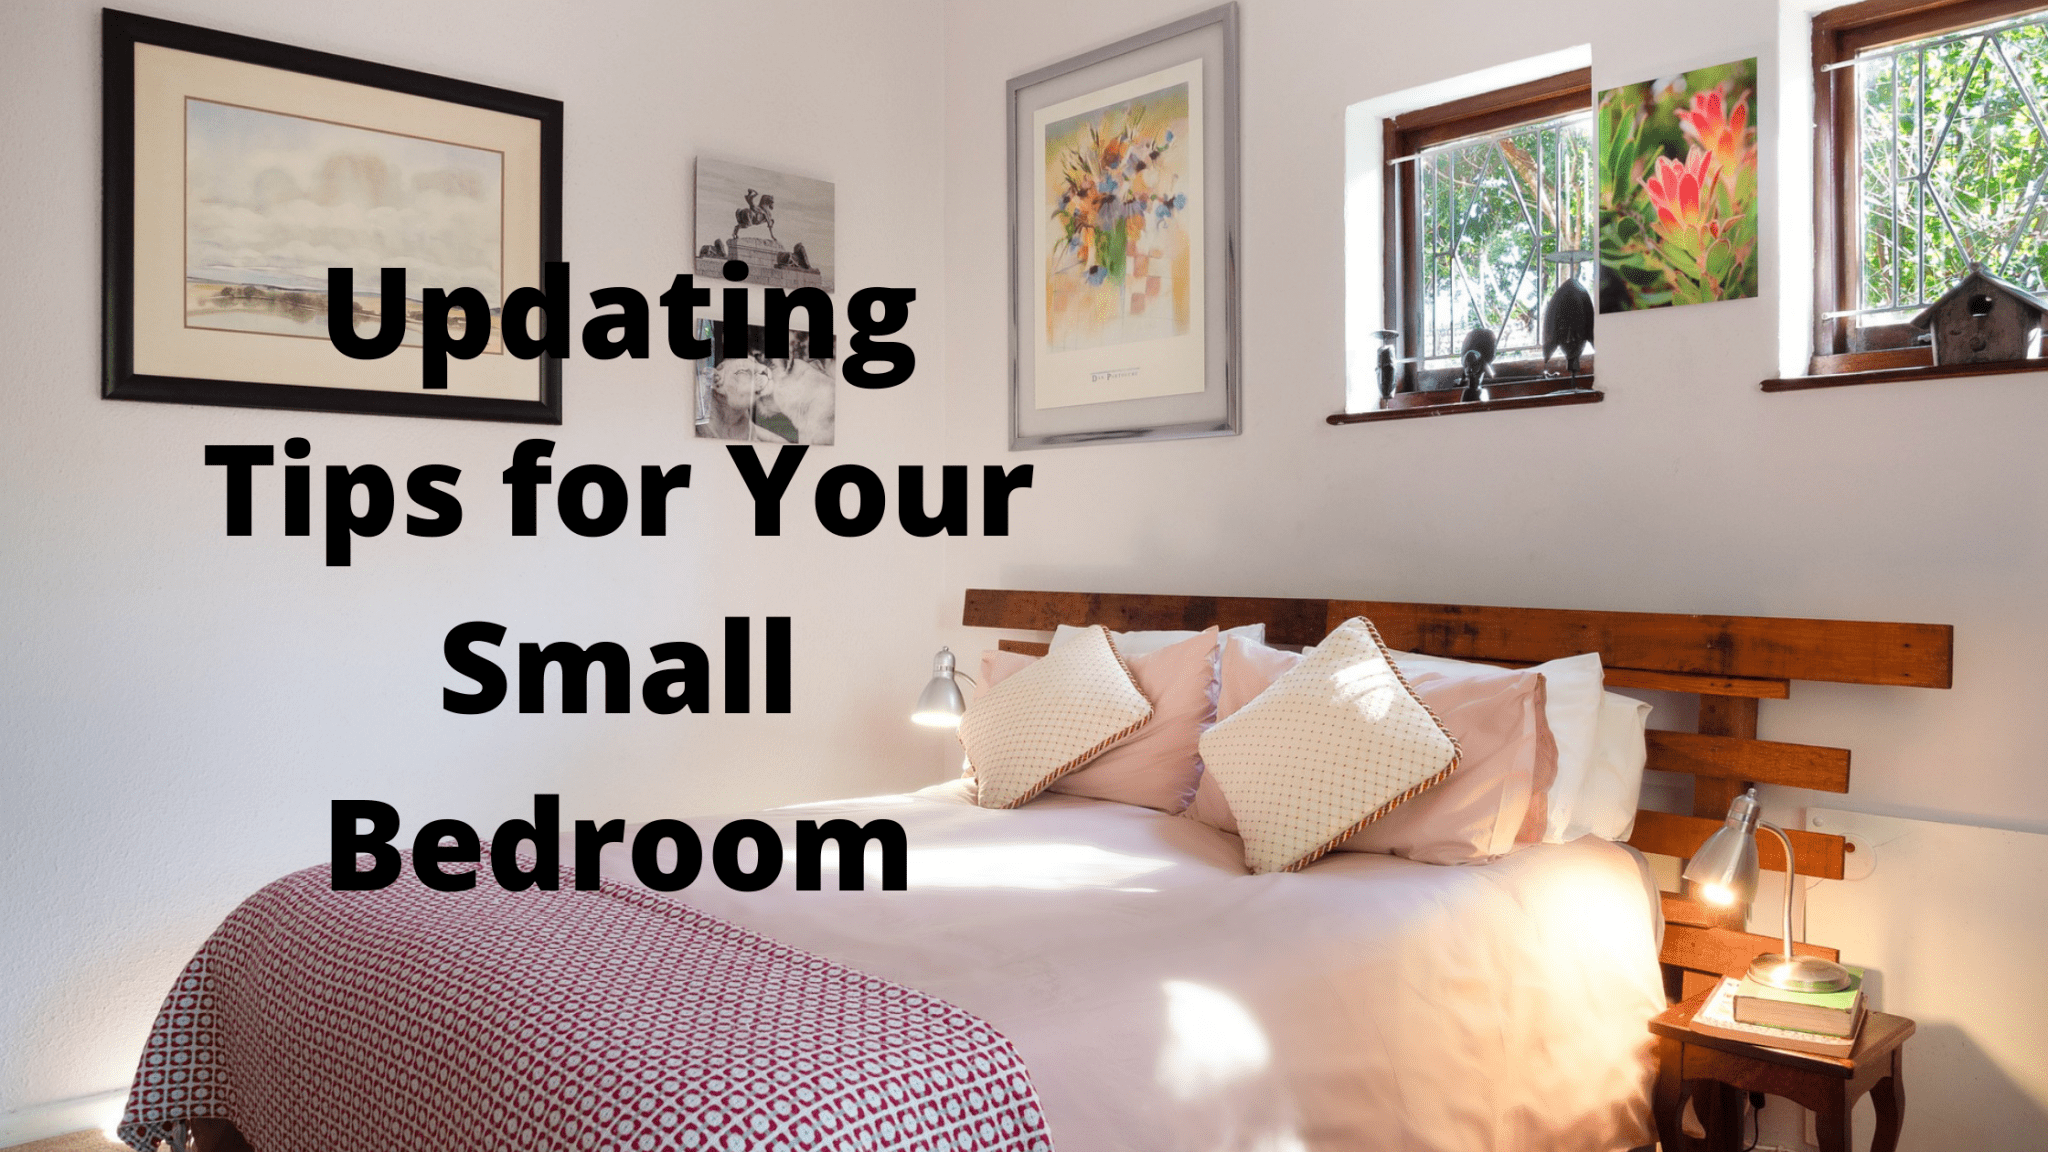 Updating Tips for Your Small Bedroom